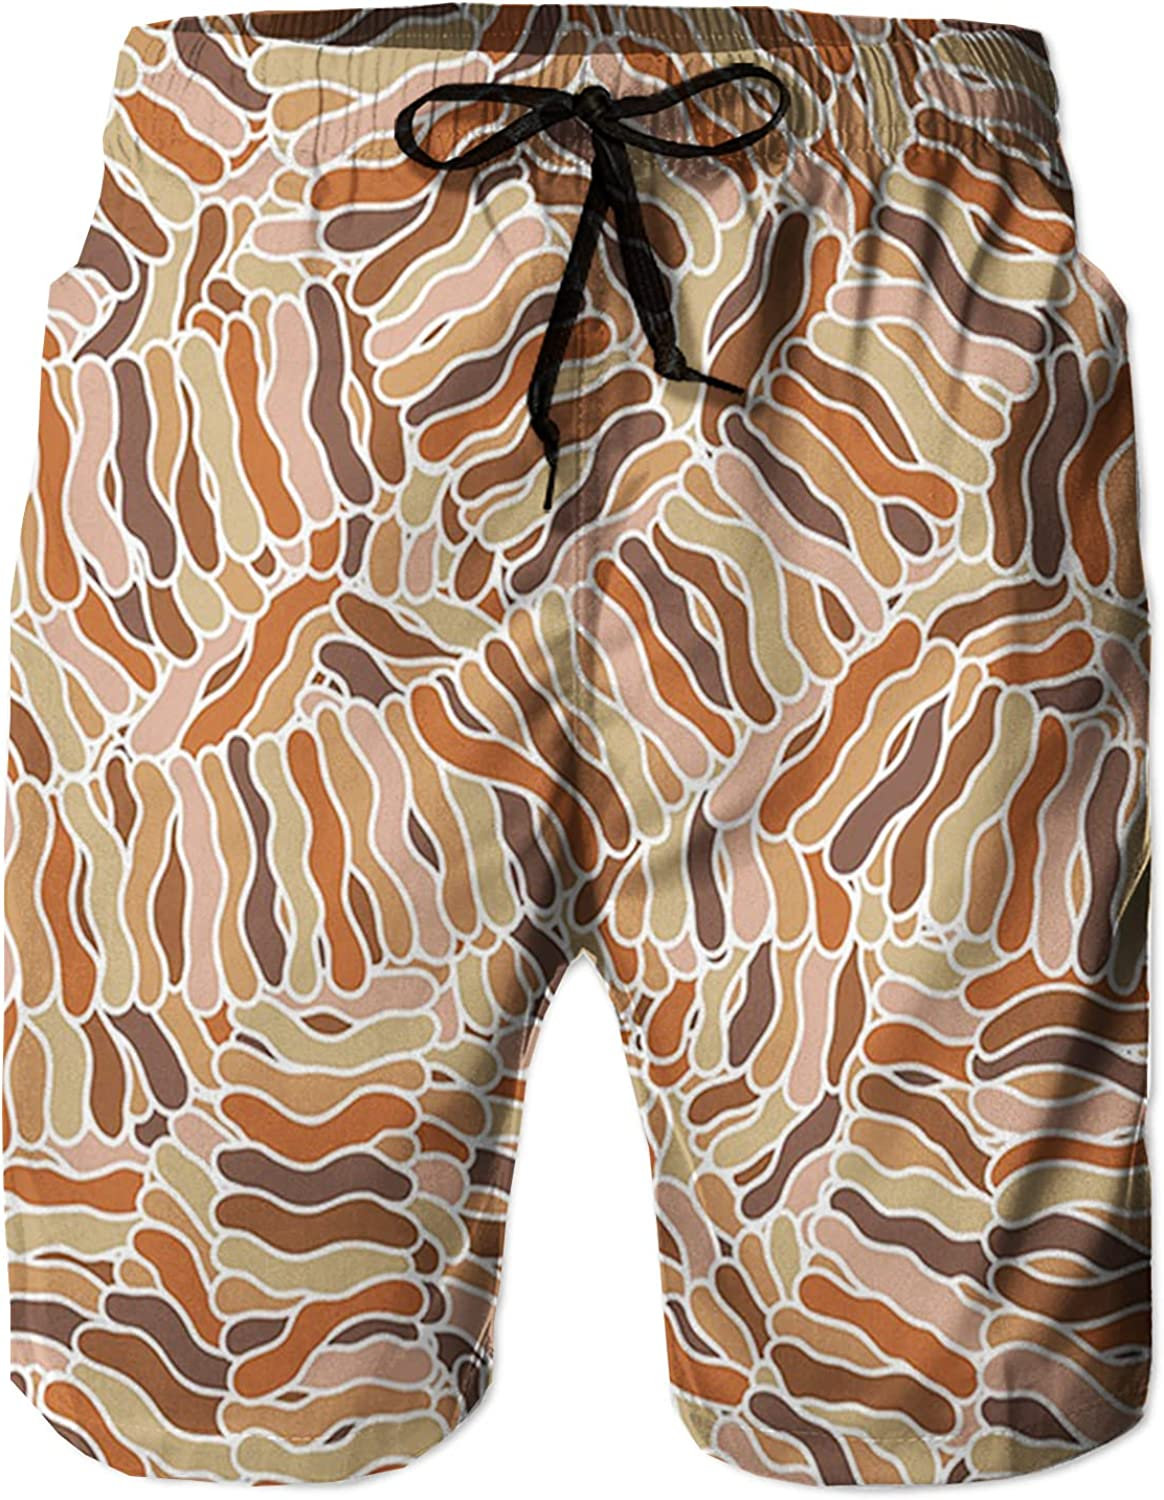 Men's Long Swim Trunks with Mesh Lining Beach Bathing Suits Board Shorts Swimwear with Pockets and No Mesh,Hand Drawn Waves Intersecting Tangled Structure L